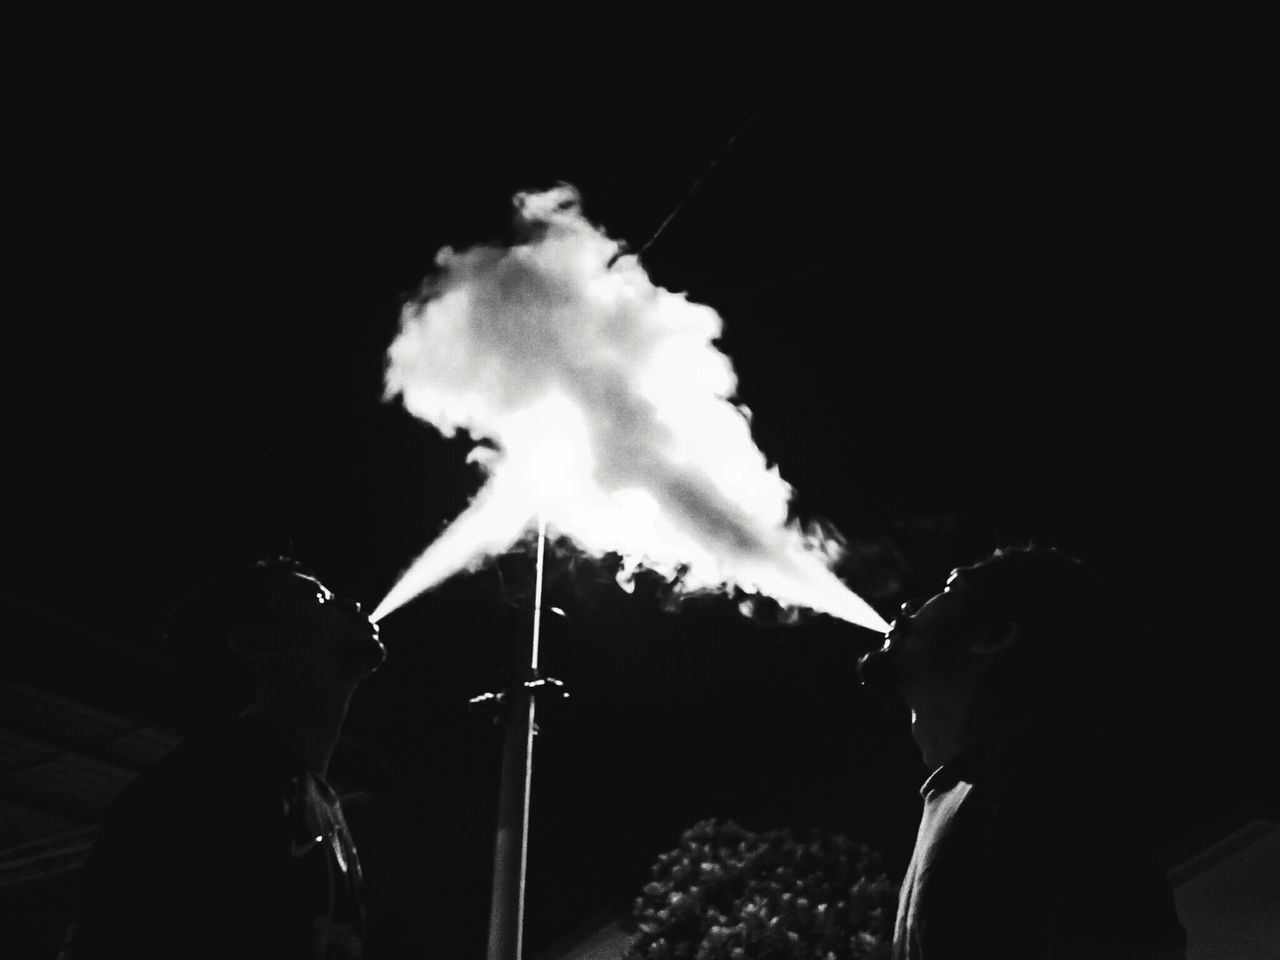 Human Hand Adults Only One Person Sky Human Body Part Outdoors Only Men One Man Only Performance People Adult Close-up Day Vapor Trail Vapesociety Vapestagram Vapecommunity Vapedaily VapeSmoke Vaper Vape On VapeLife Vapemod Blackandwhite Photography Blackandwhite